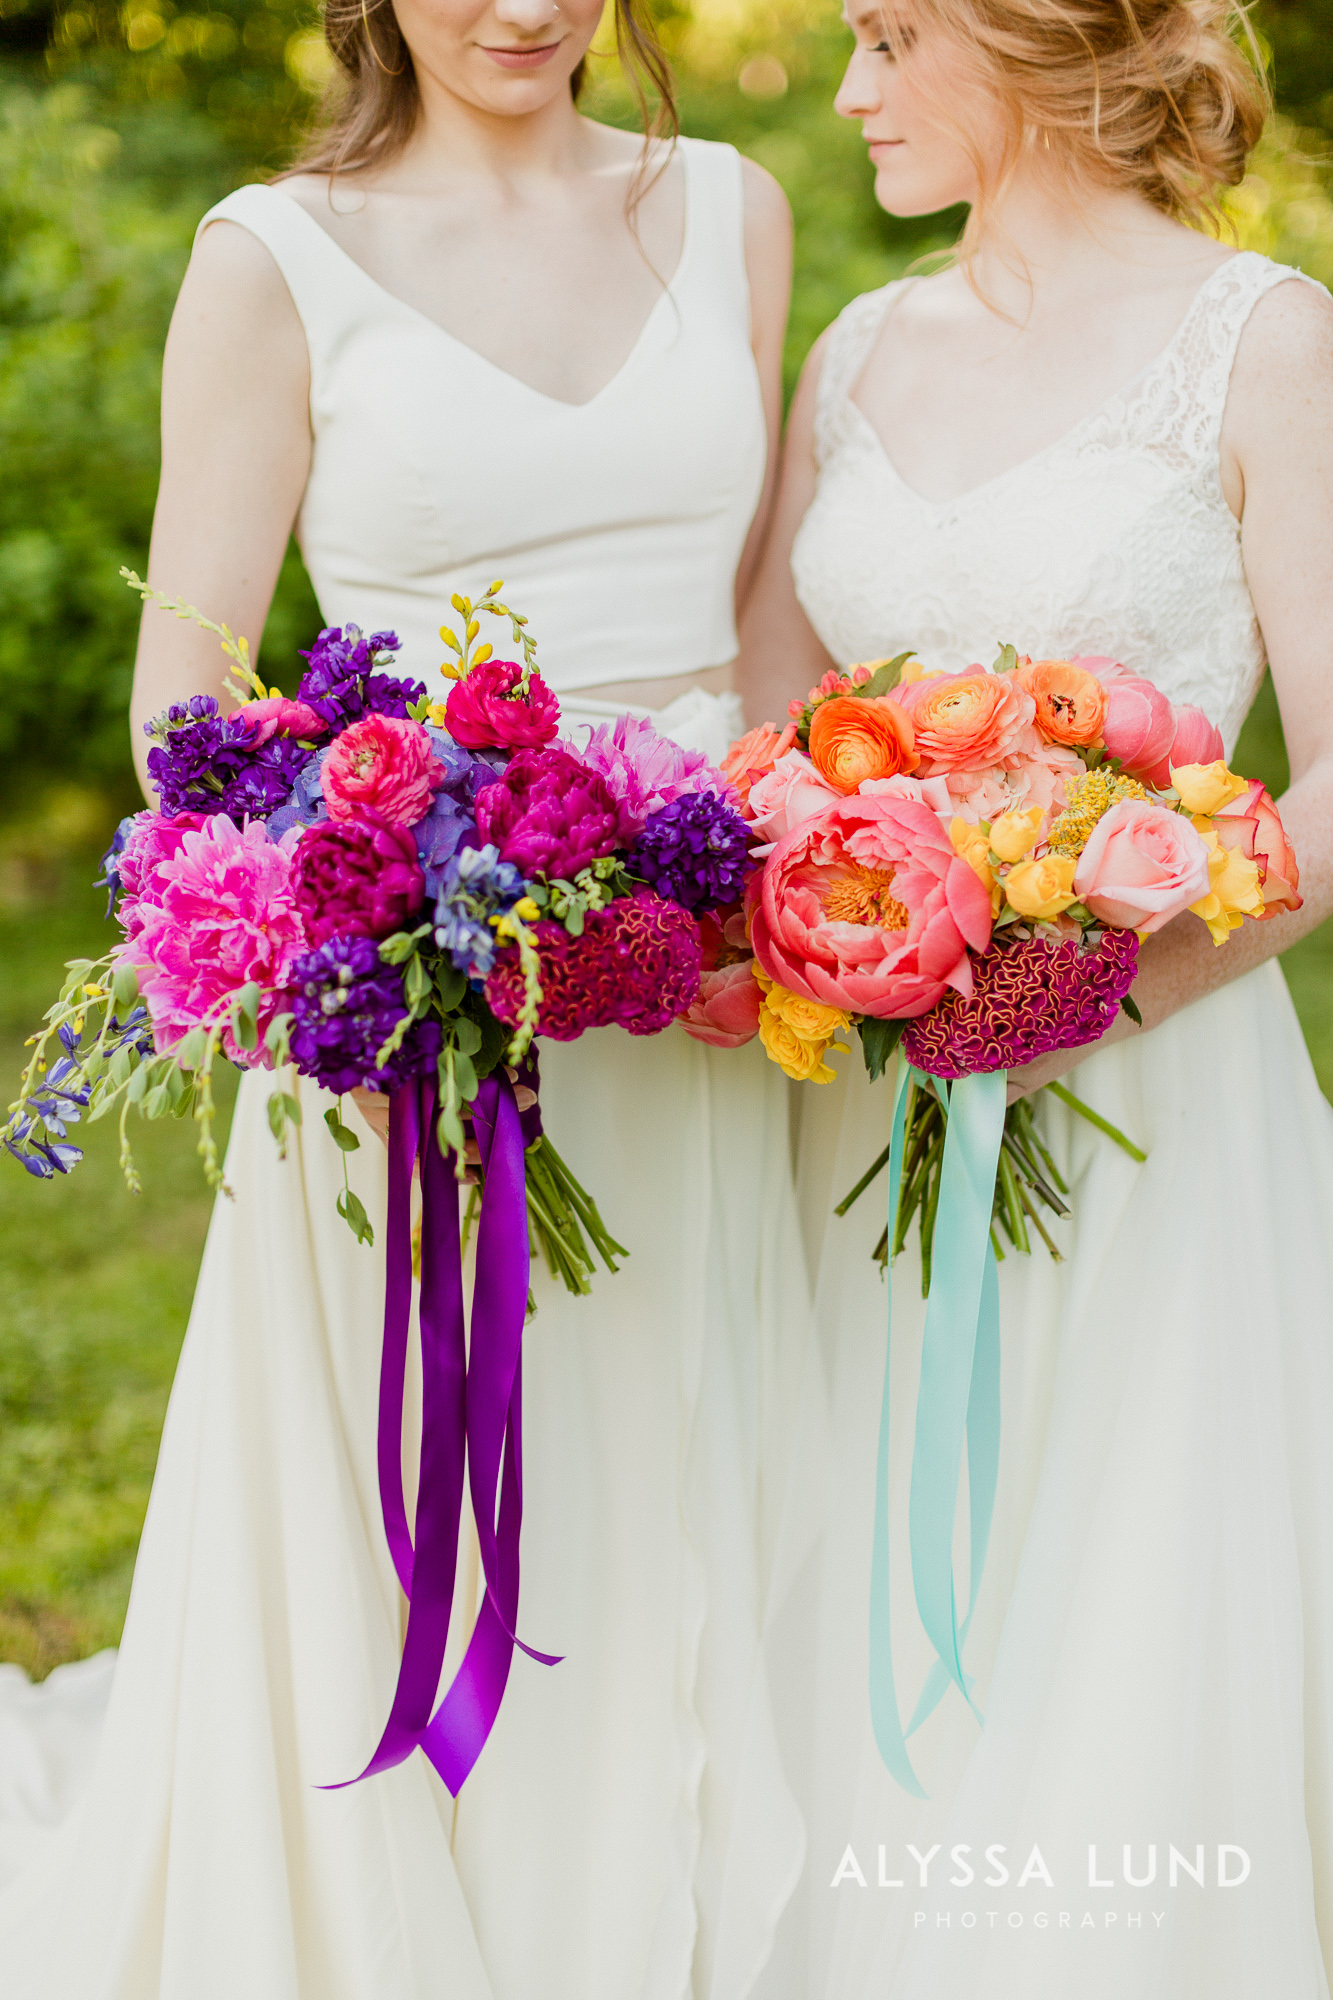 Queer wedding photography inspiration by Alyssa Lund Photography-27.jpg